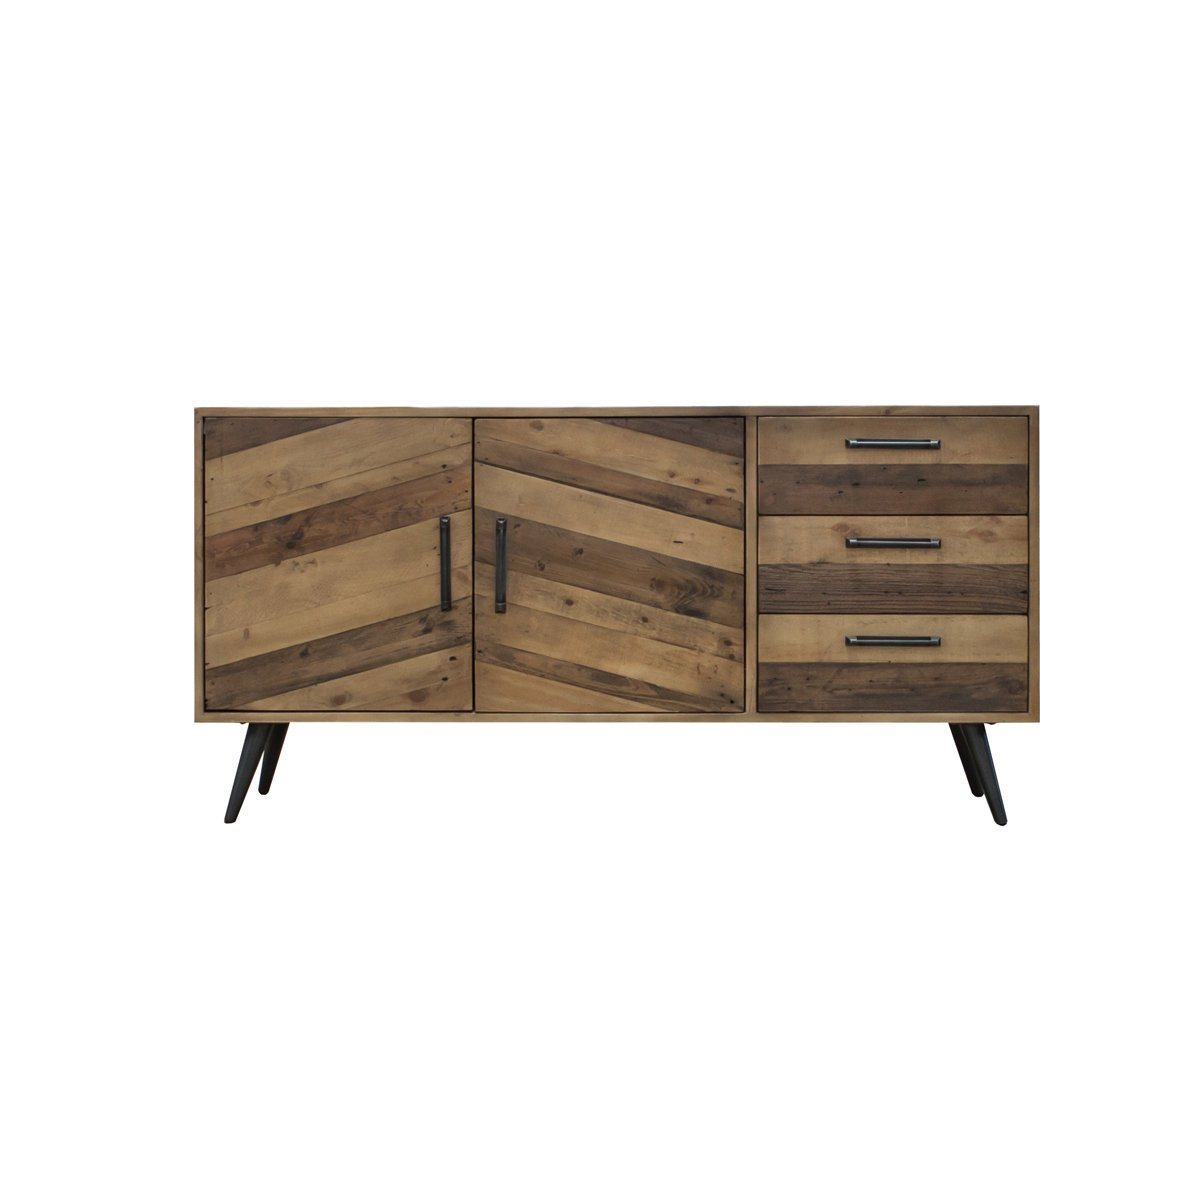 Apollo Sideboard - LH Imports